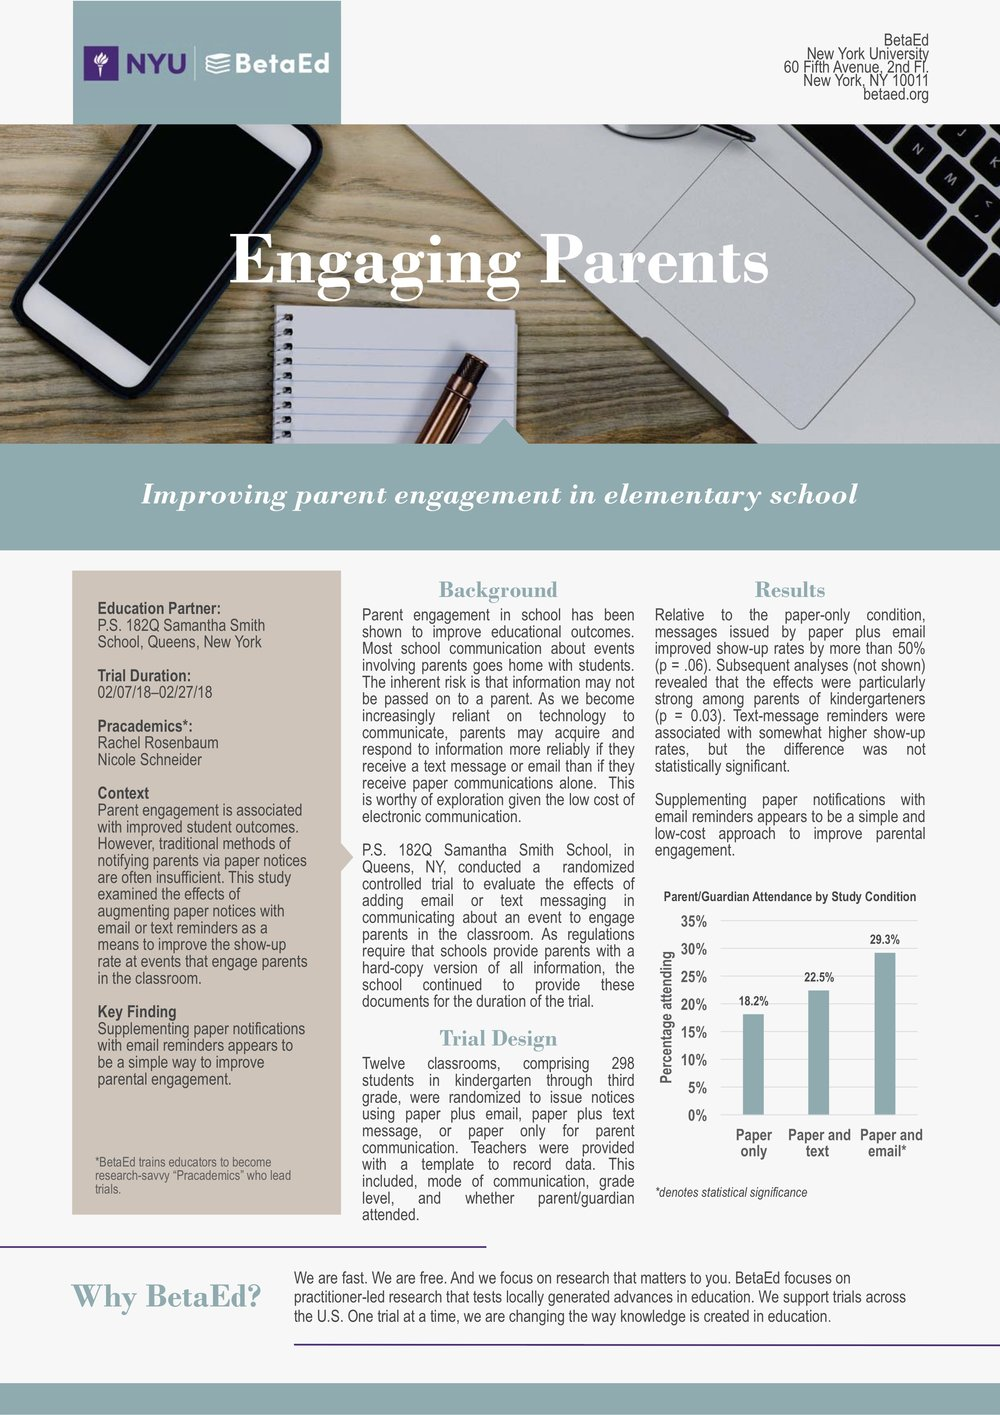 Increasing Parent Involvement with Email Notifications